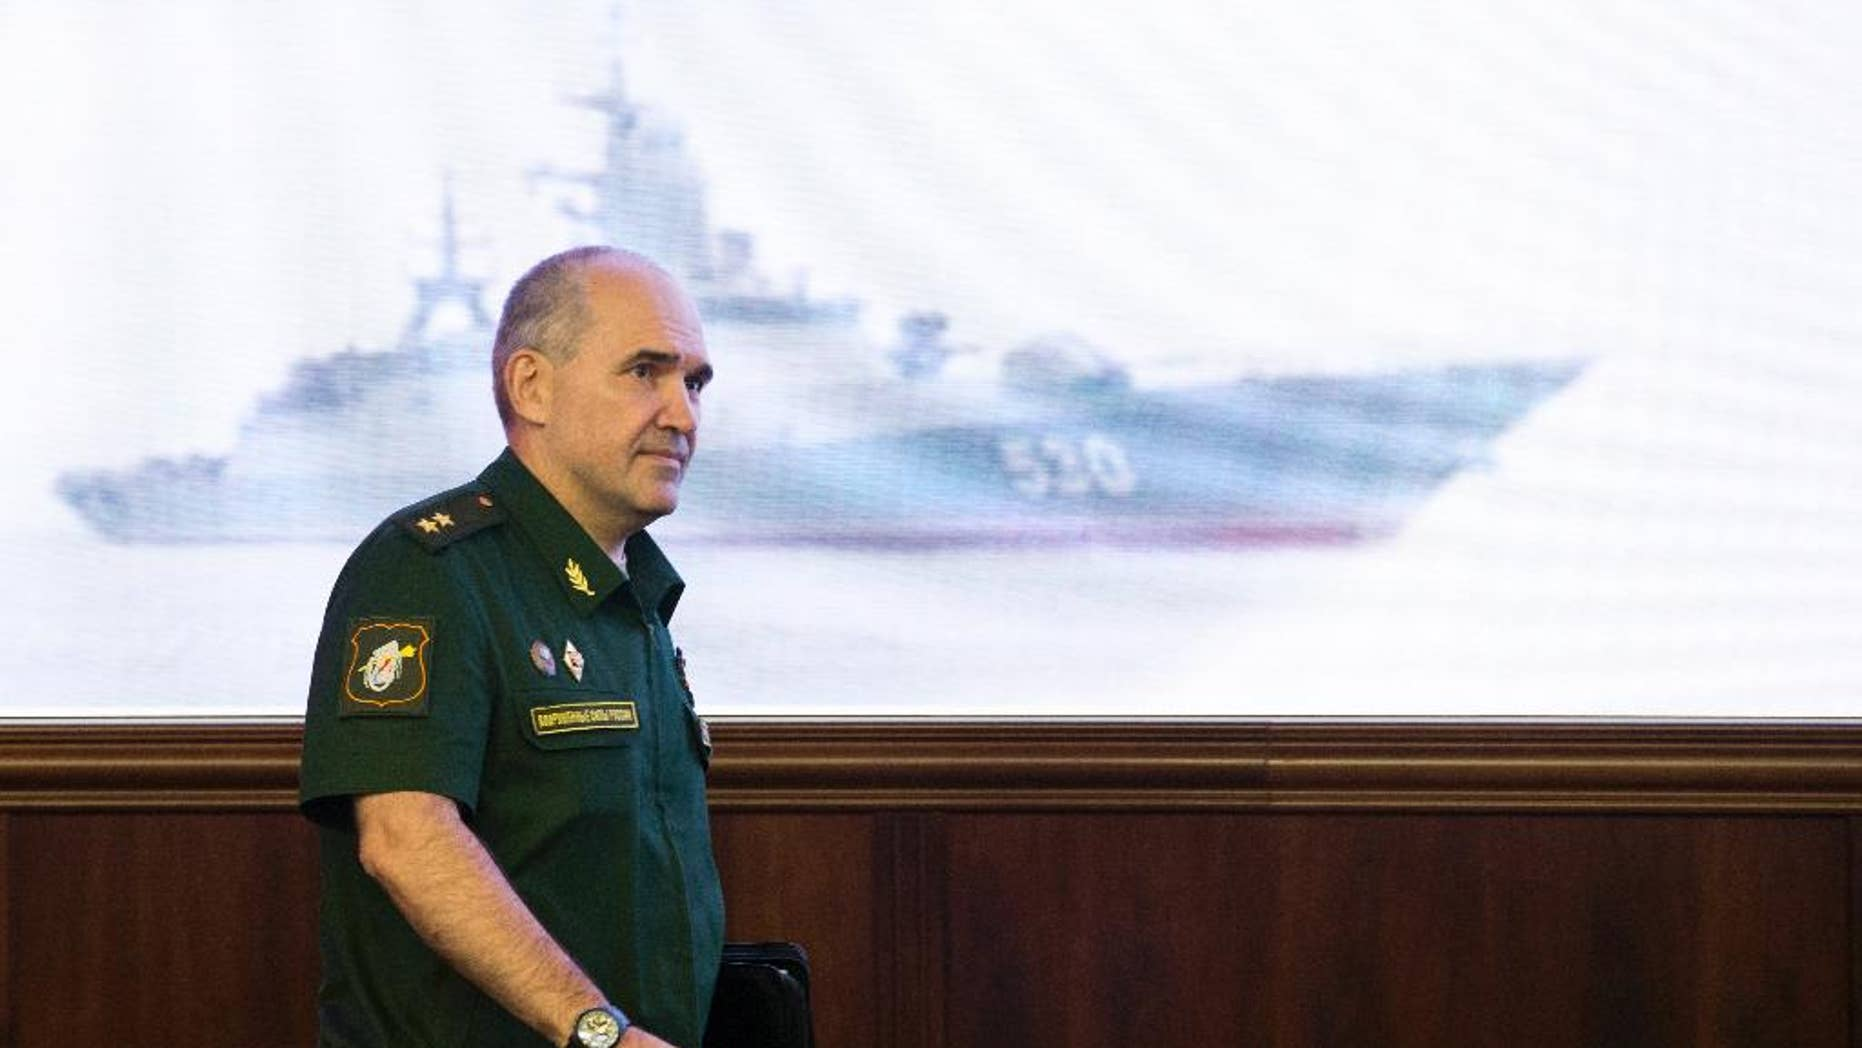 Lt.-Gen. Sergei Rudskoi of the Russian Military General Staff, arrives to speak to the media at a Russian Defense Ministry building in Moscow, Russia, Wednesday, Aug. 10, 2016. Rudskoi said that fighting in Aleppo will cease for three hours daily to allow humanitarian aid deliveries. (AP Photo/Ivan Sekretarev)